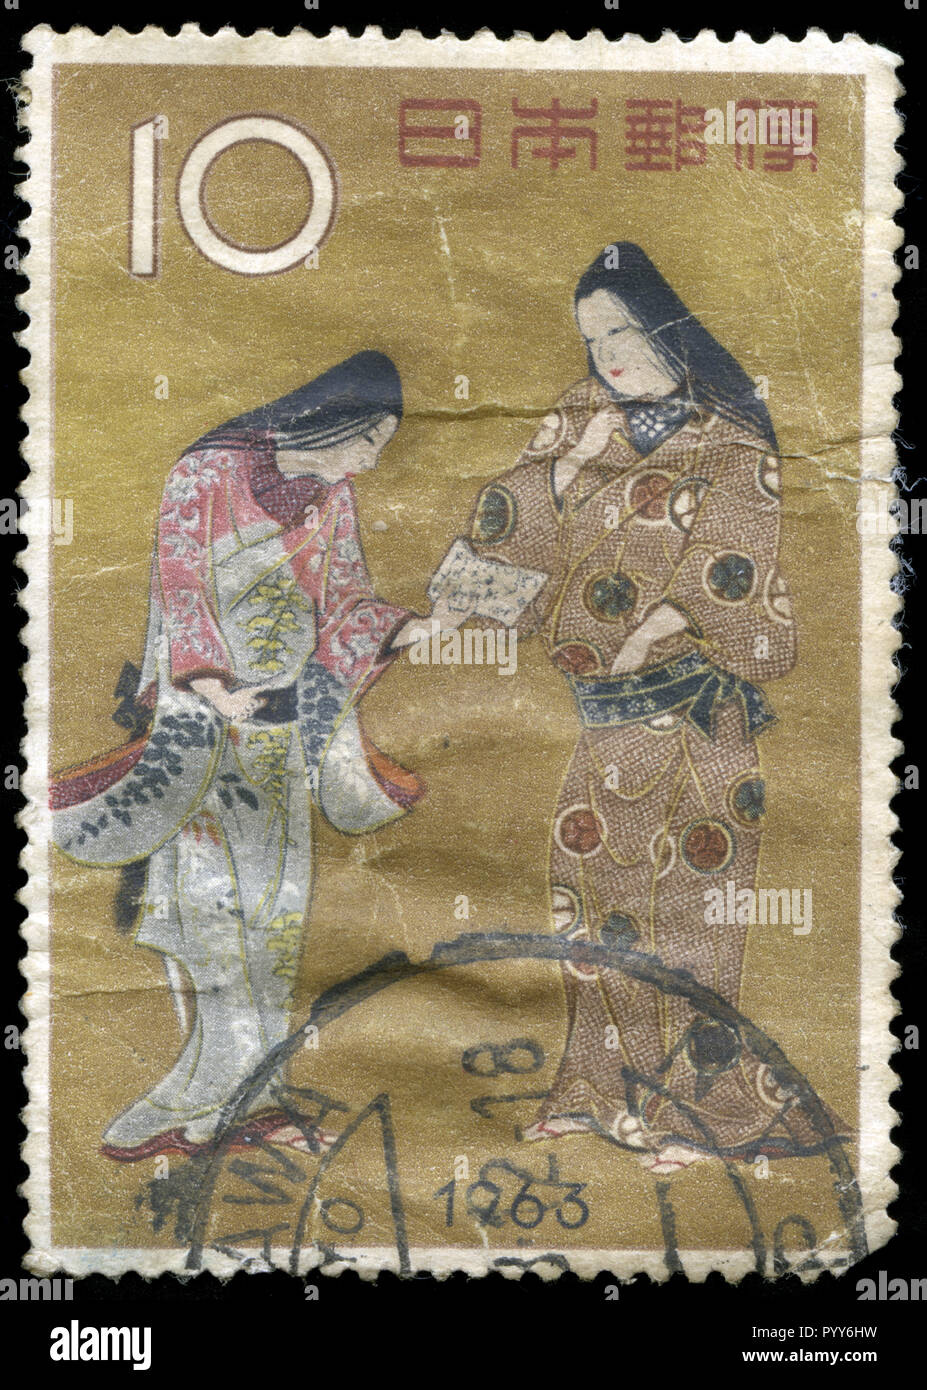 Postmarked stamp from Japan in the  Philatelic Week 1963 series - Stock Image